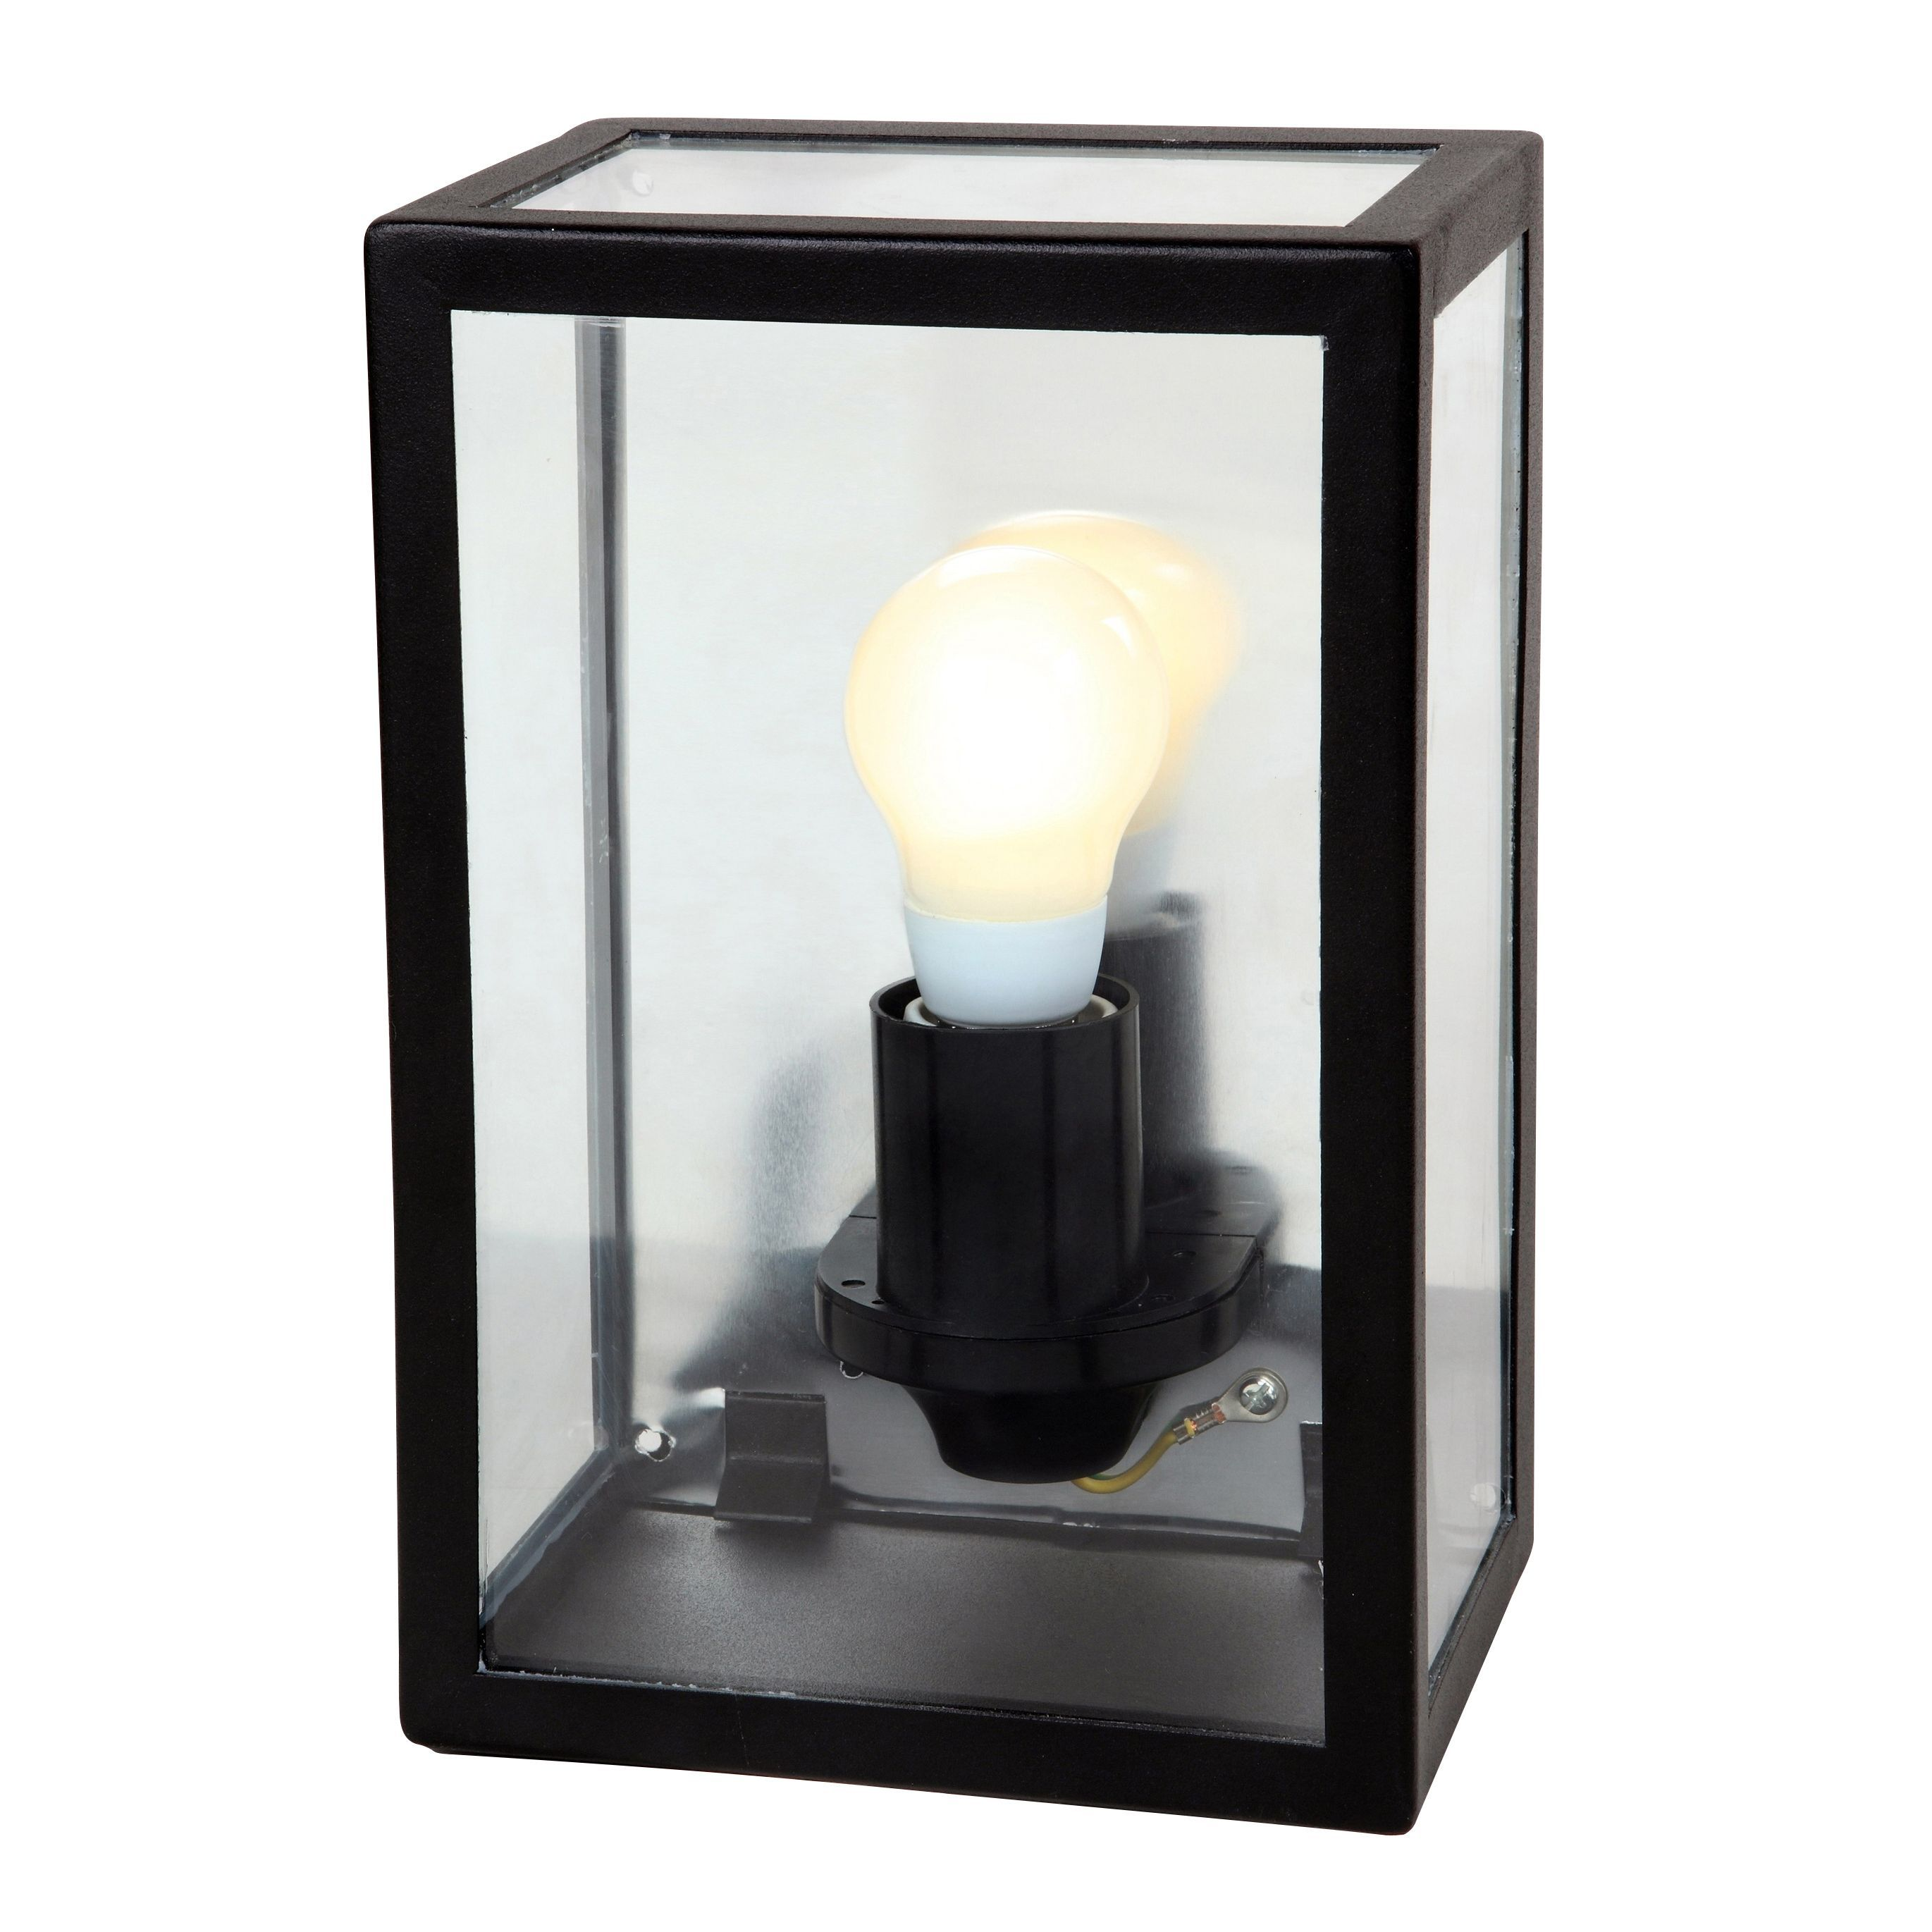 Blooma gallina black mains powered external wall light for Diy wall lighting